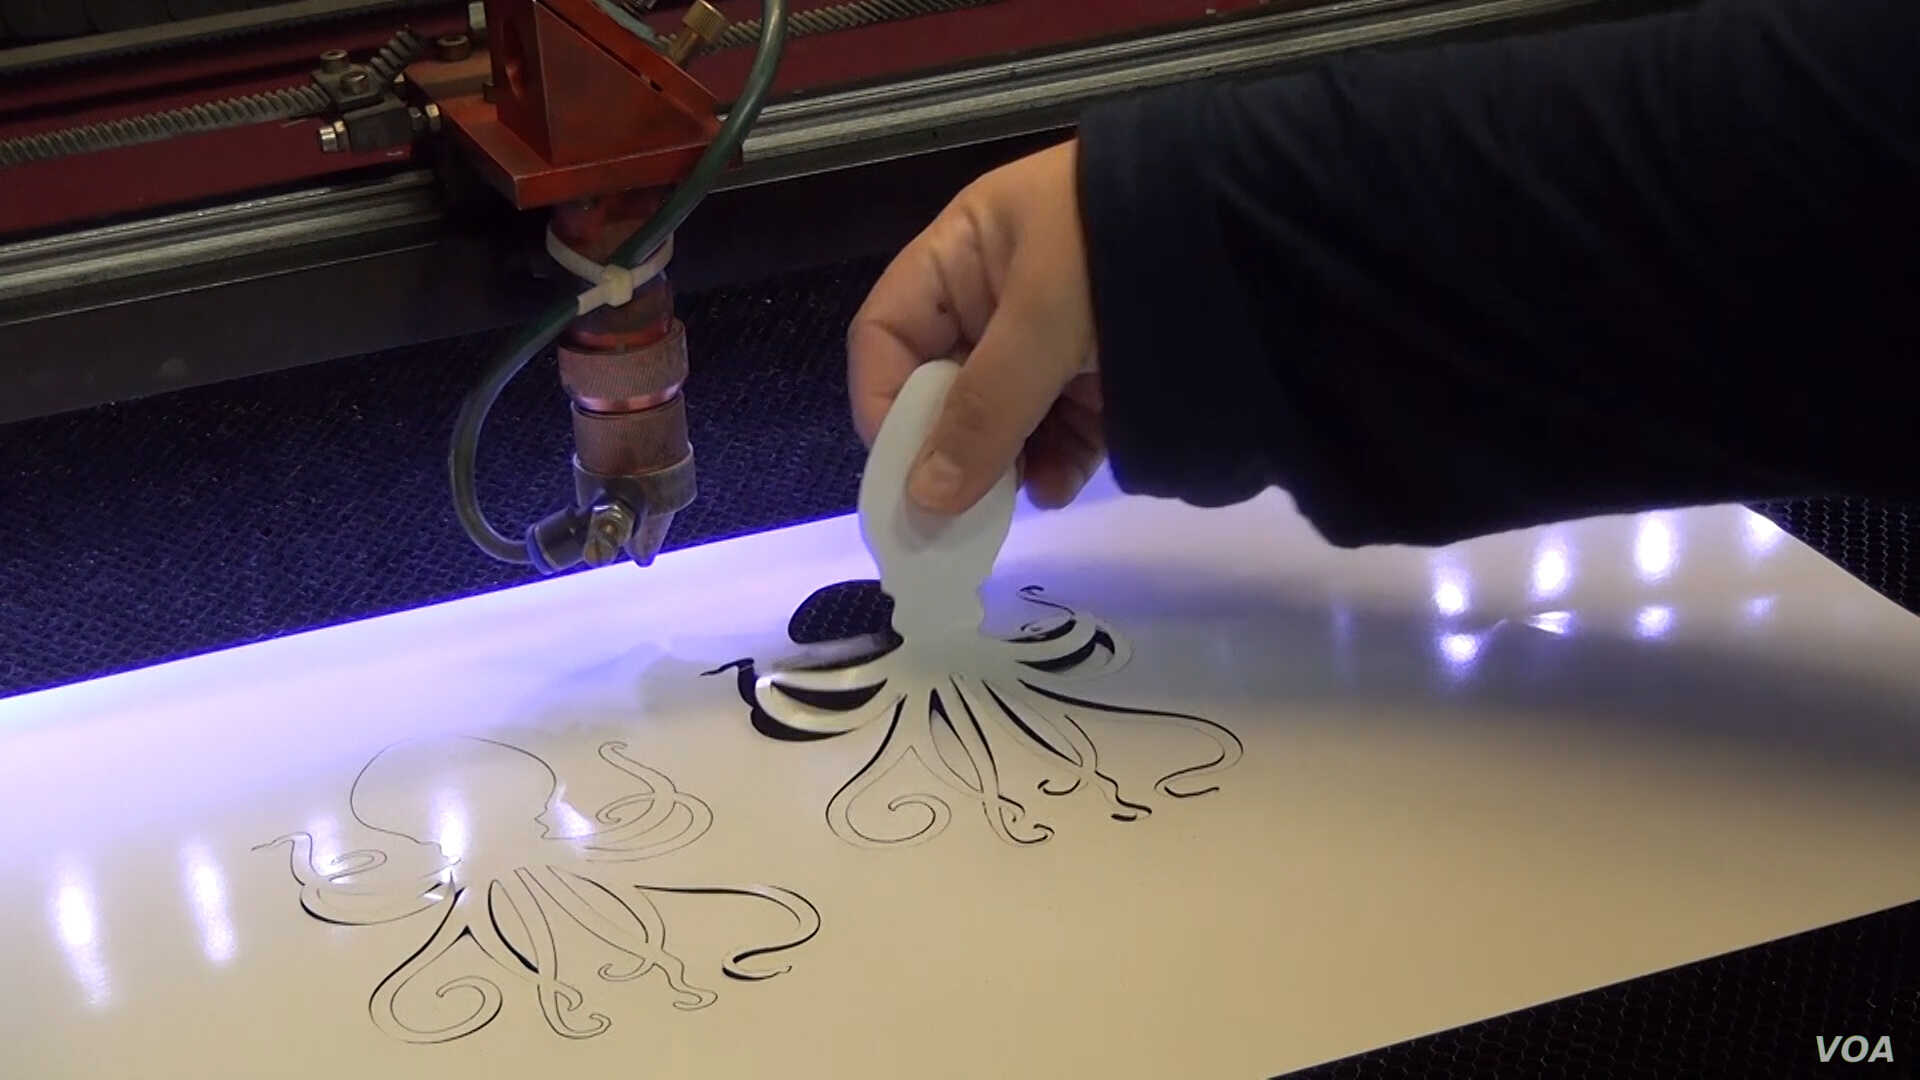 The massive laser cutter at Ace Monster Toys can handle the most delicate tasks.